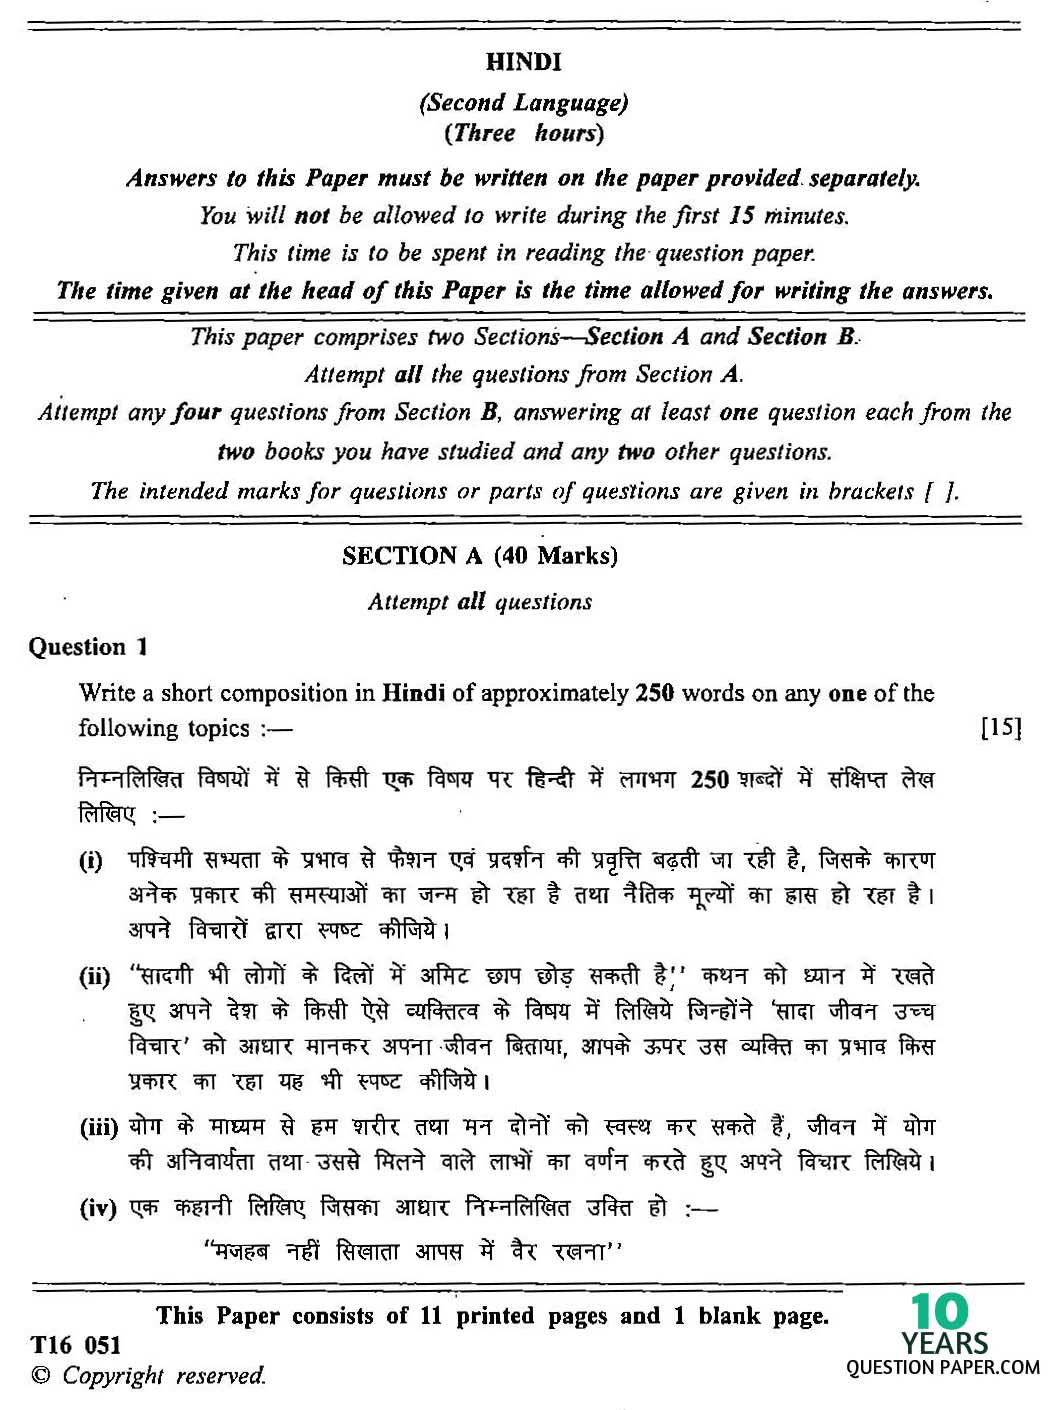 icse hindi class x board question paper years question icse 2016 class 10th hindi question paper